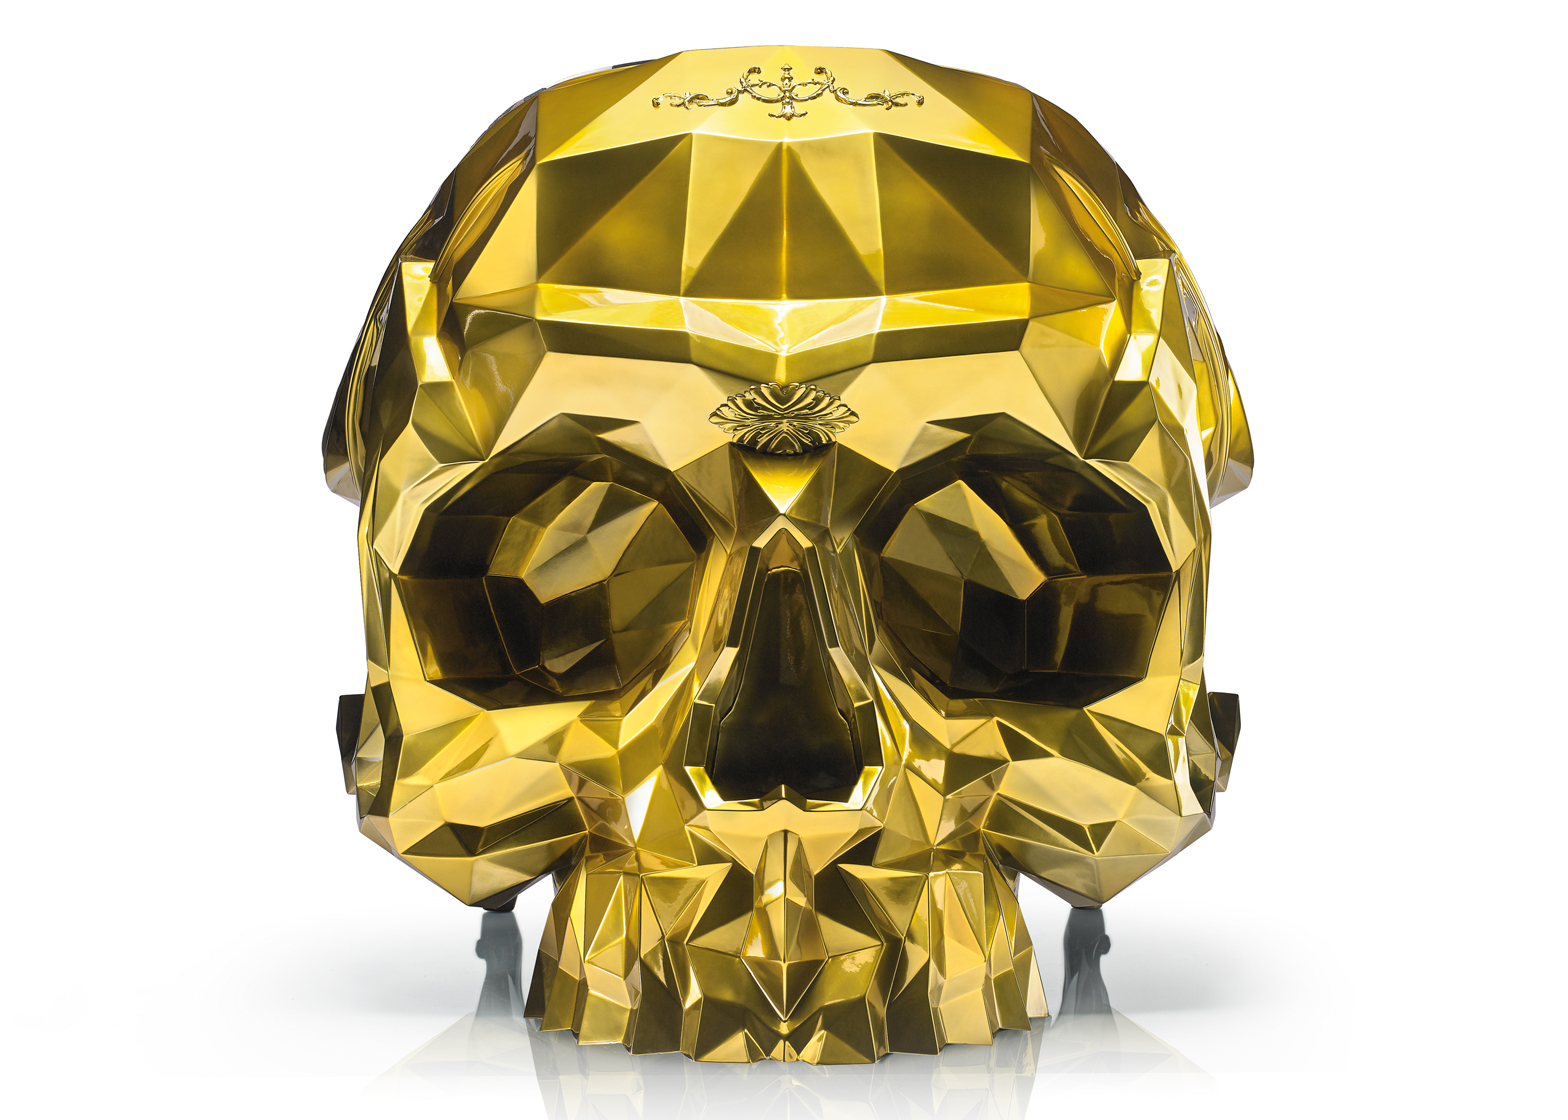 Harow S Gold Plated Skull Armchair Carries A 500k Price Tag